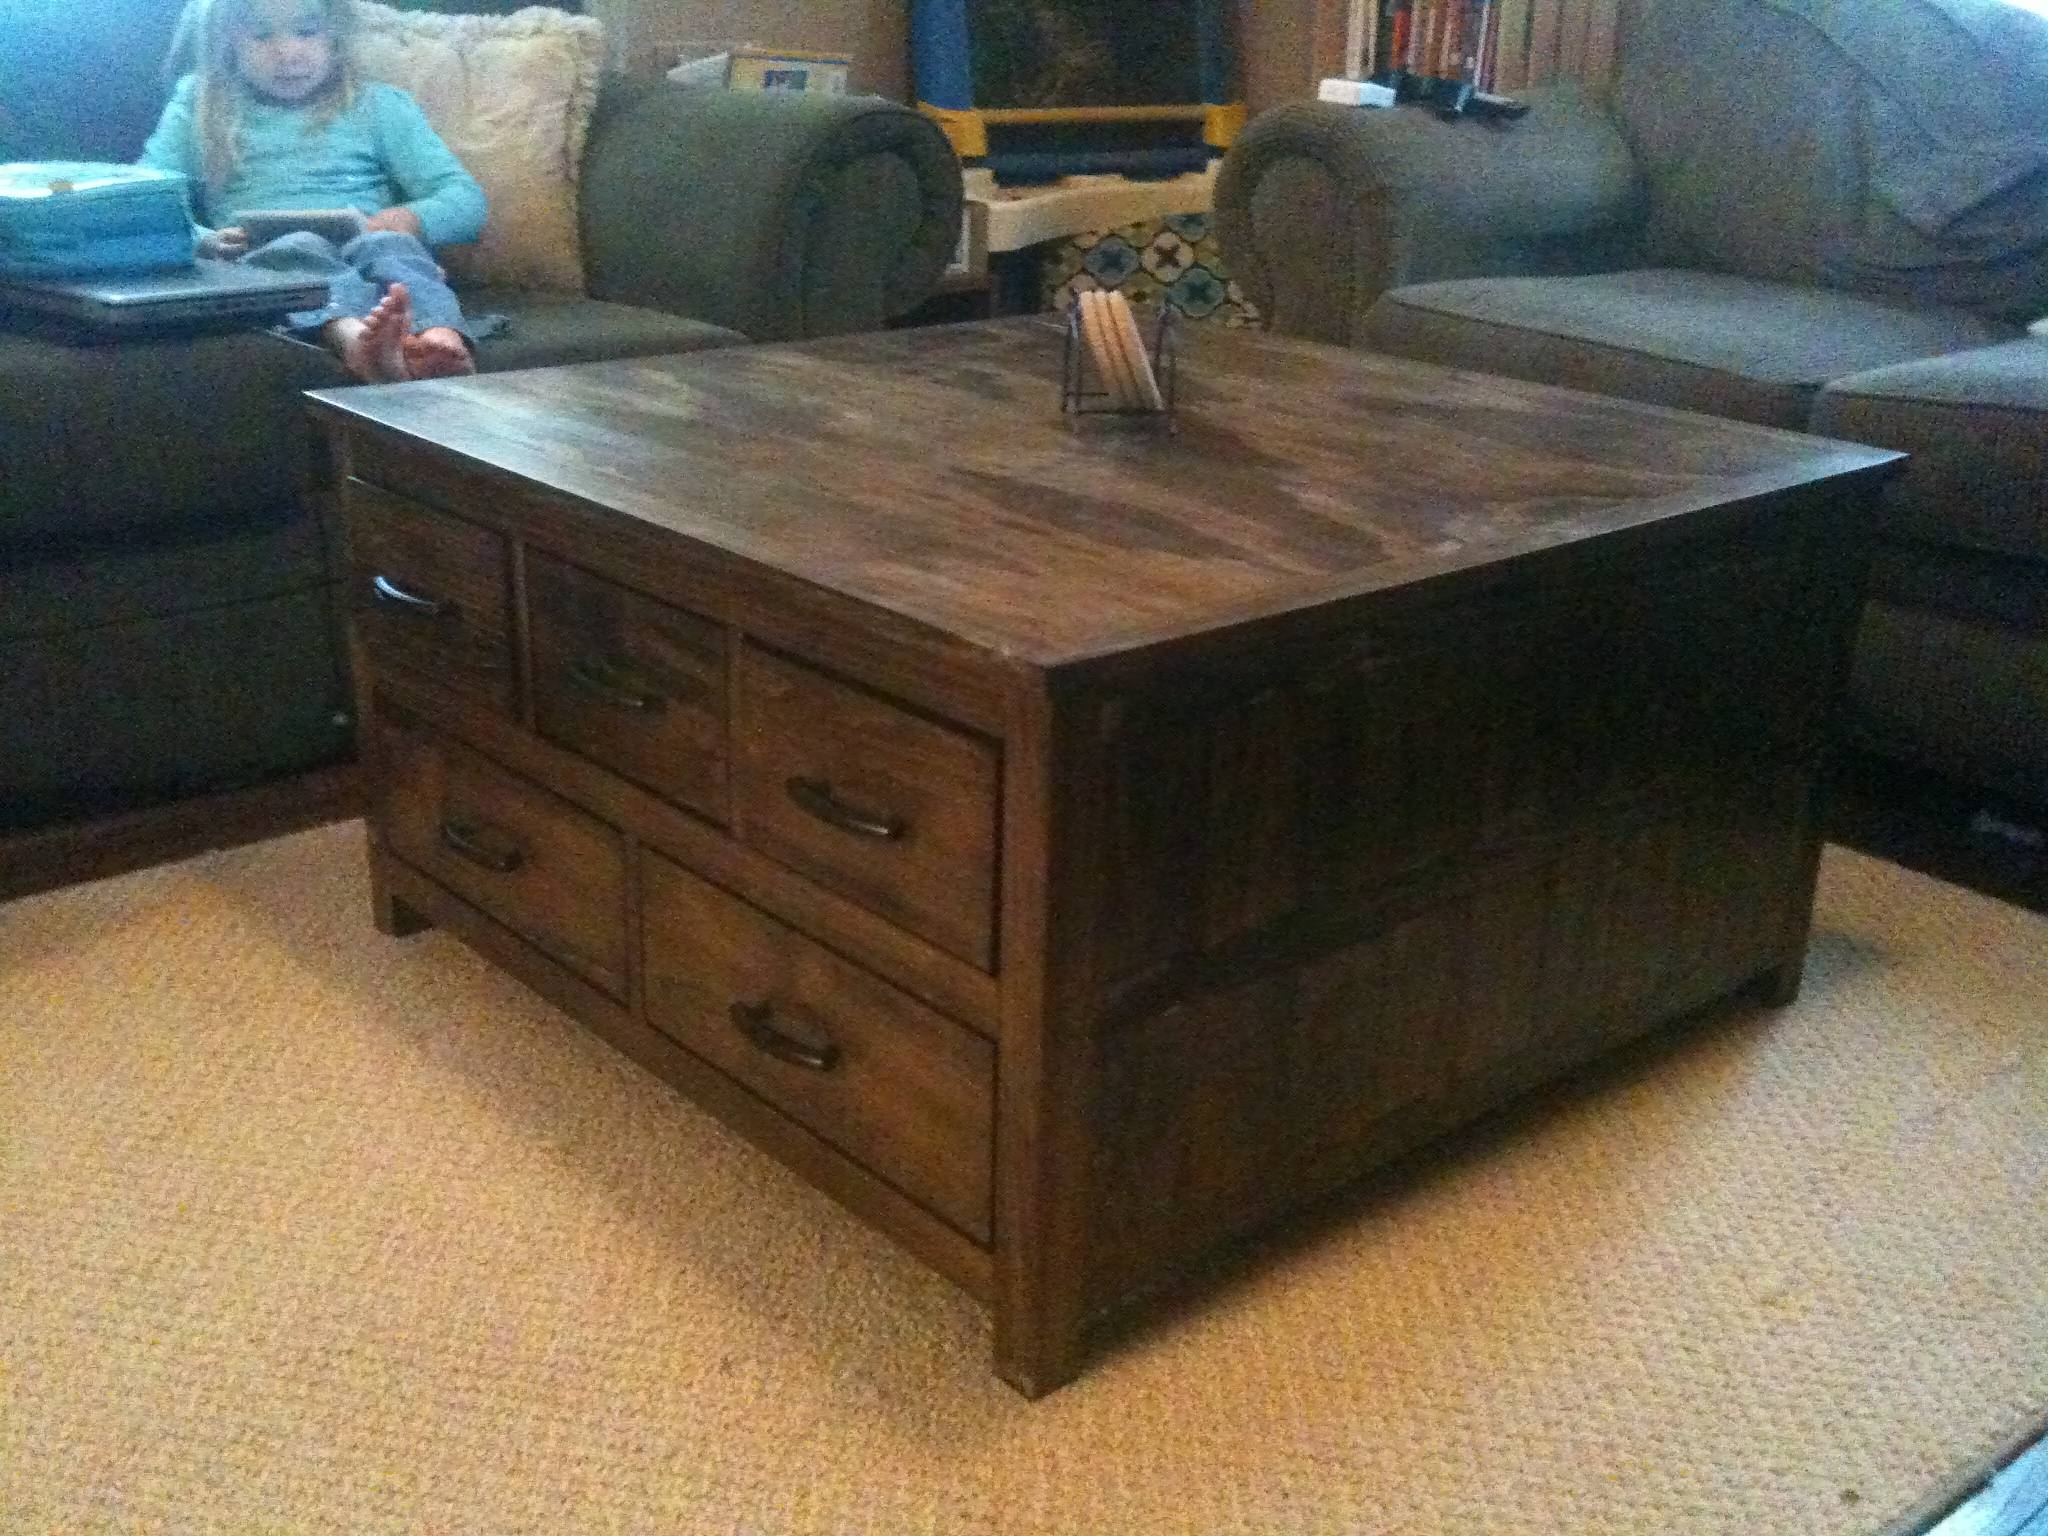 Orly Oak Square Coffee Table With Drawers | Coffee Tables Decoration intended for Oak Square Coffee Tables (Image 21 of 30)